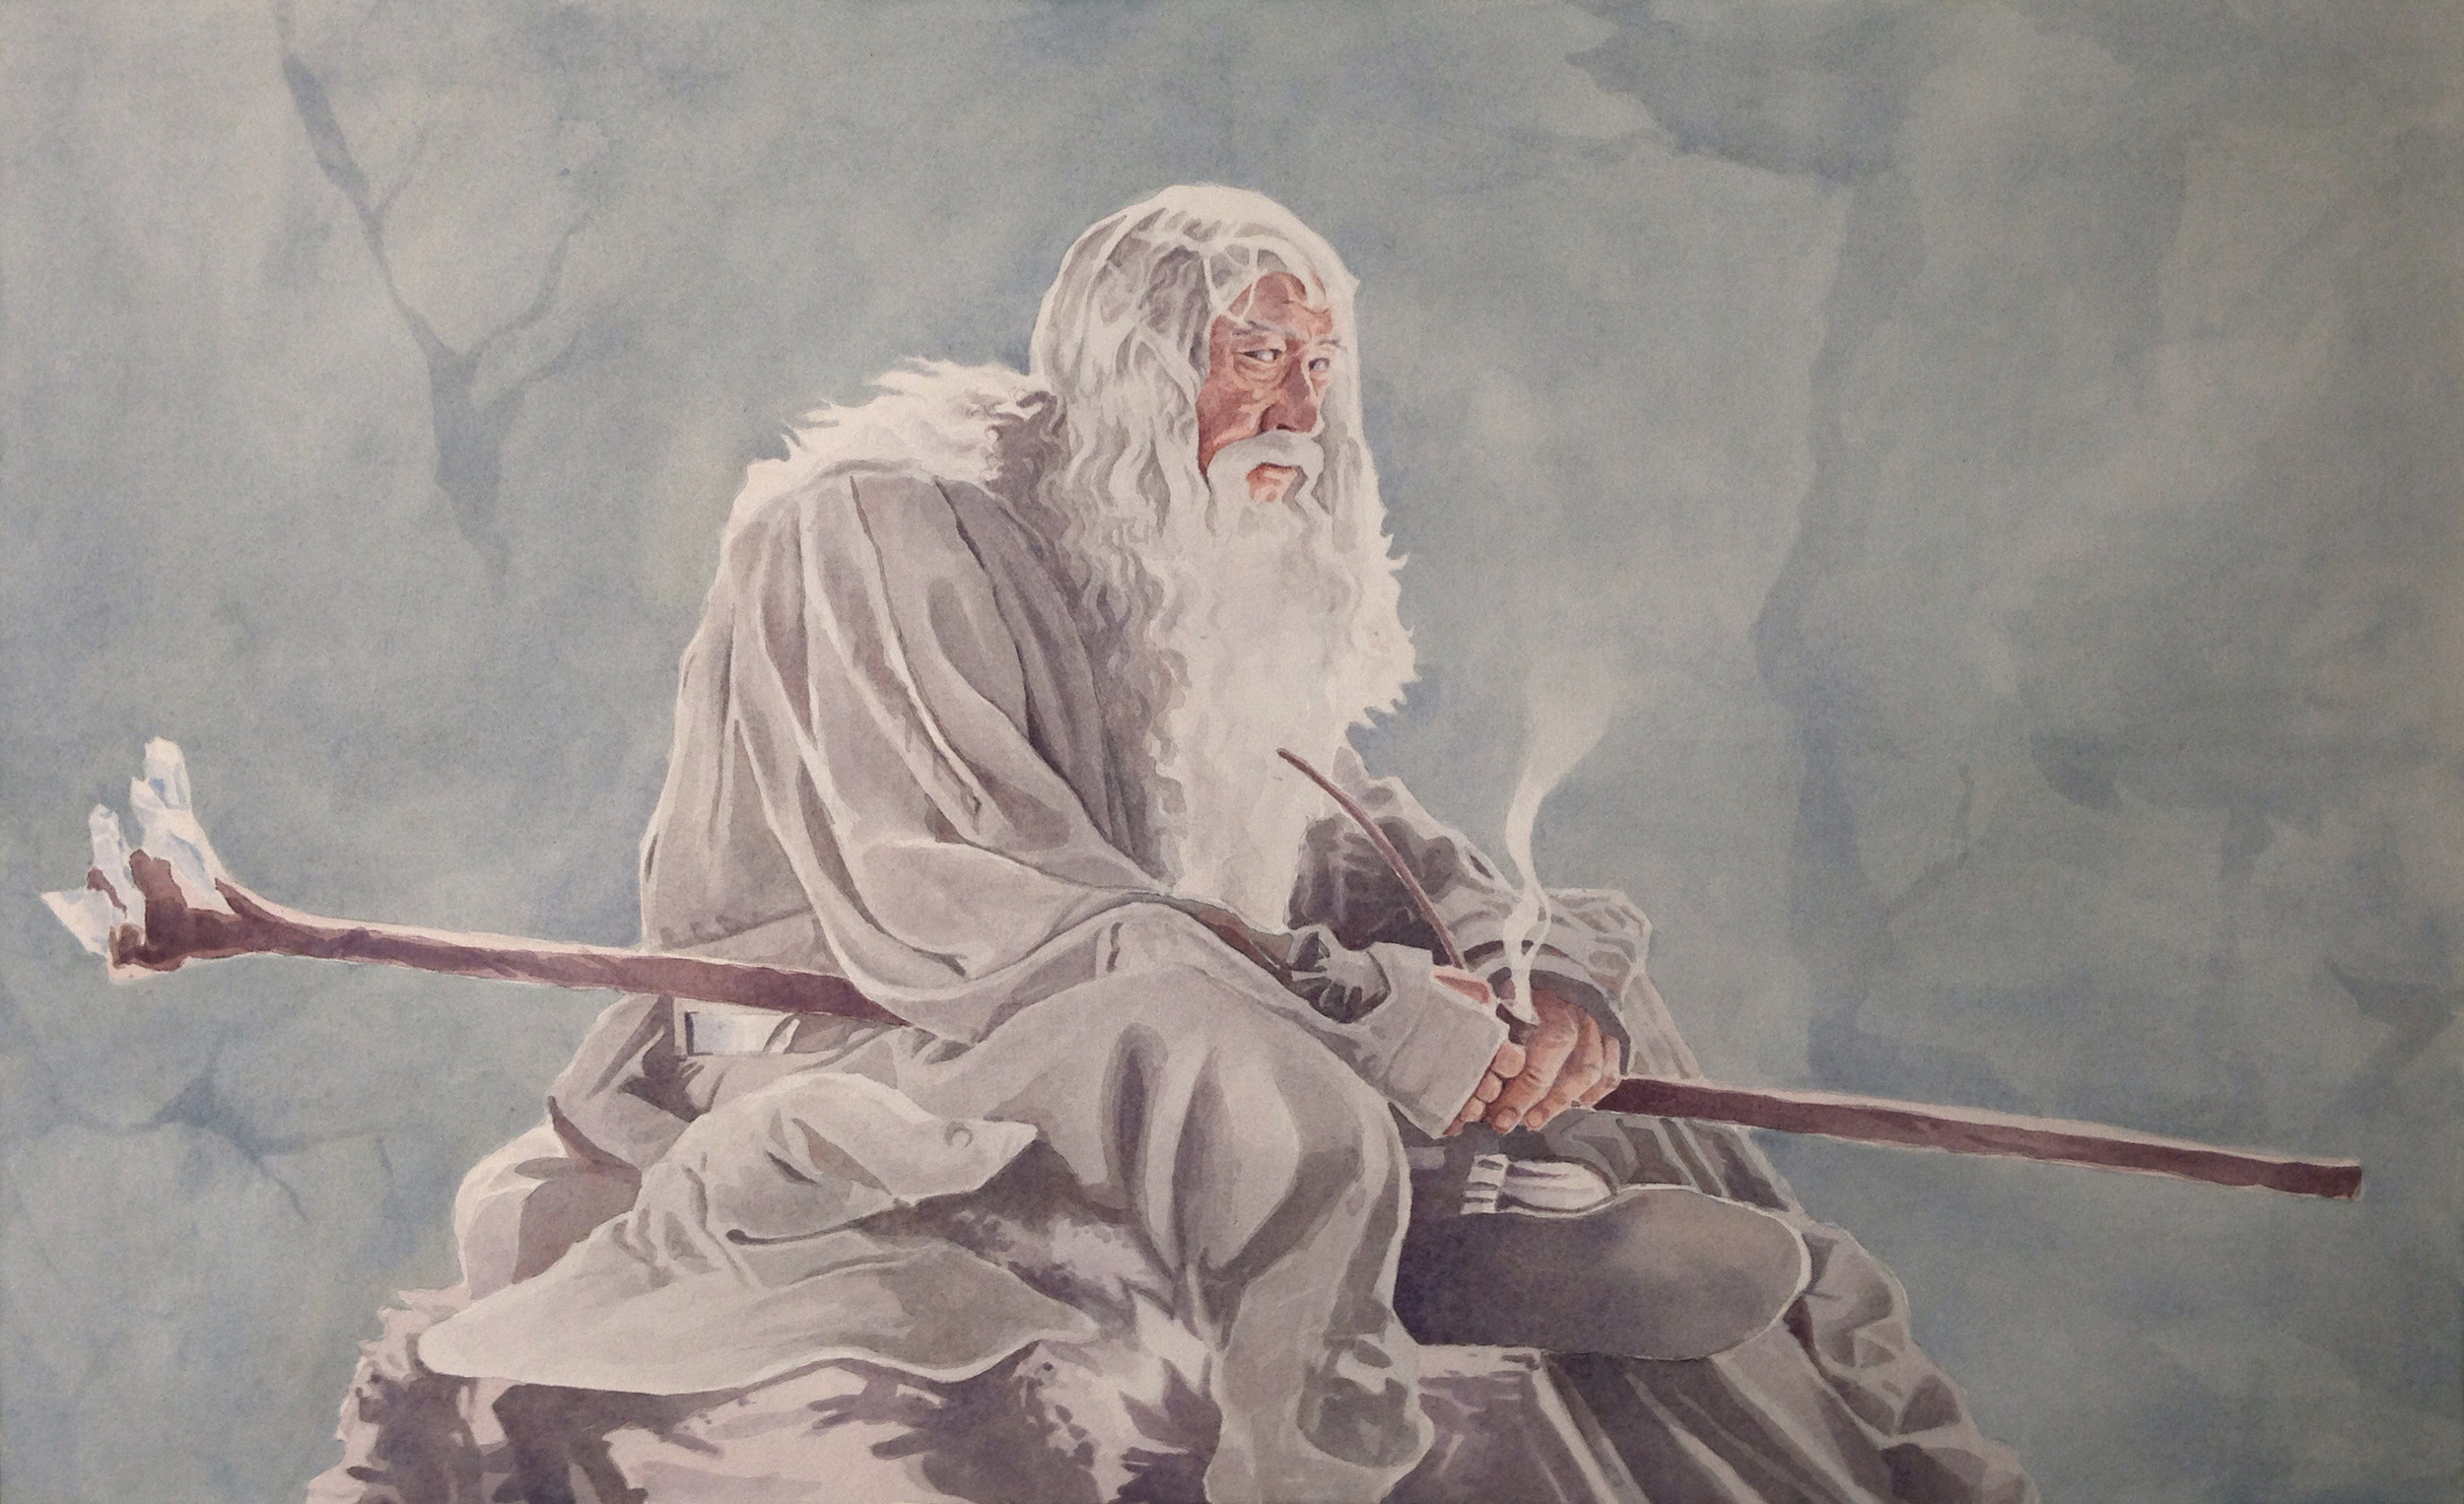 Gandalf-Watercolour-10-2015.jpg